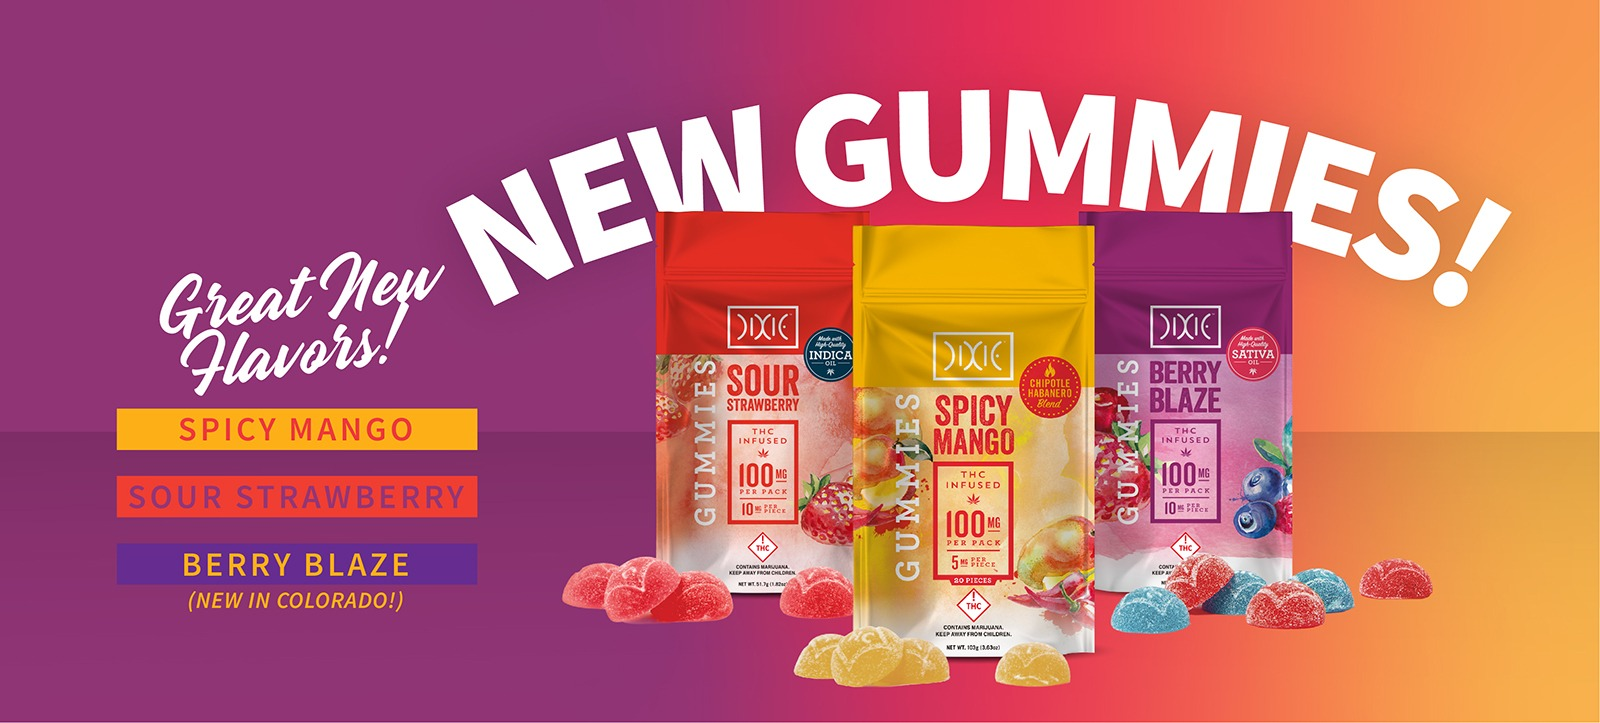 NEW! Dixie Gummies Flavors in Colorado